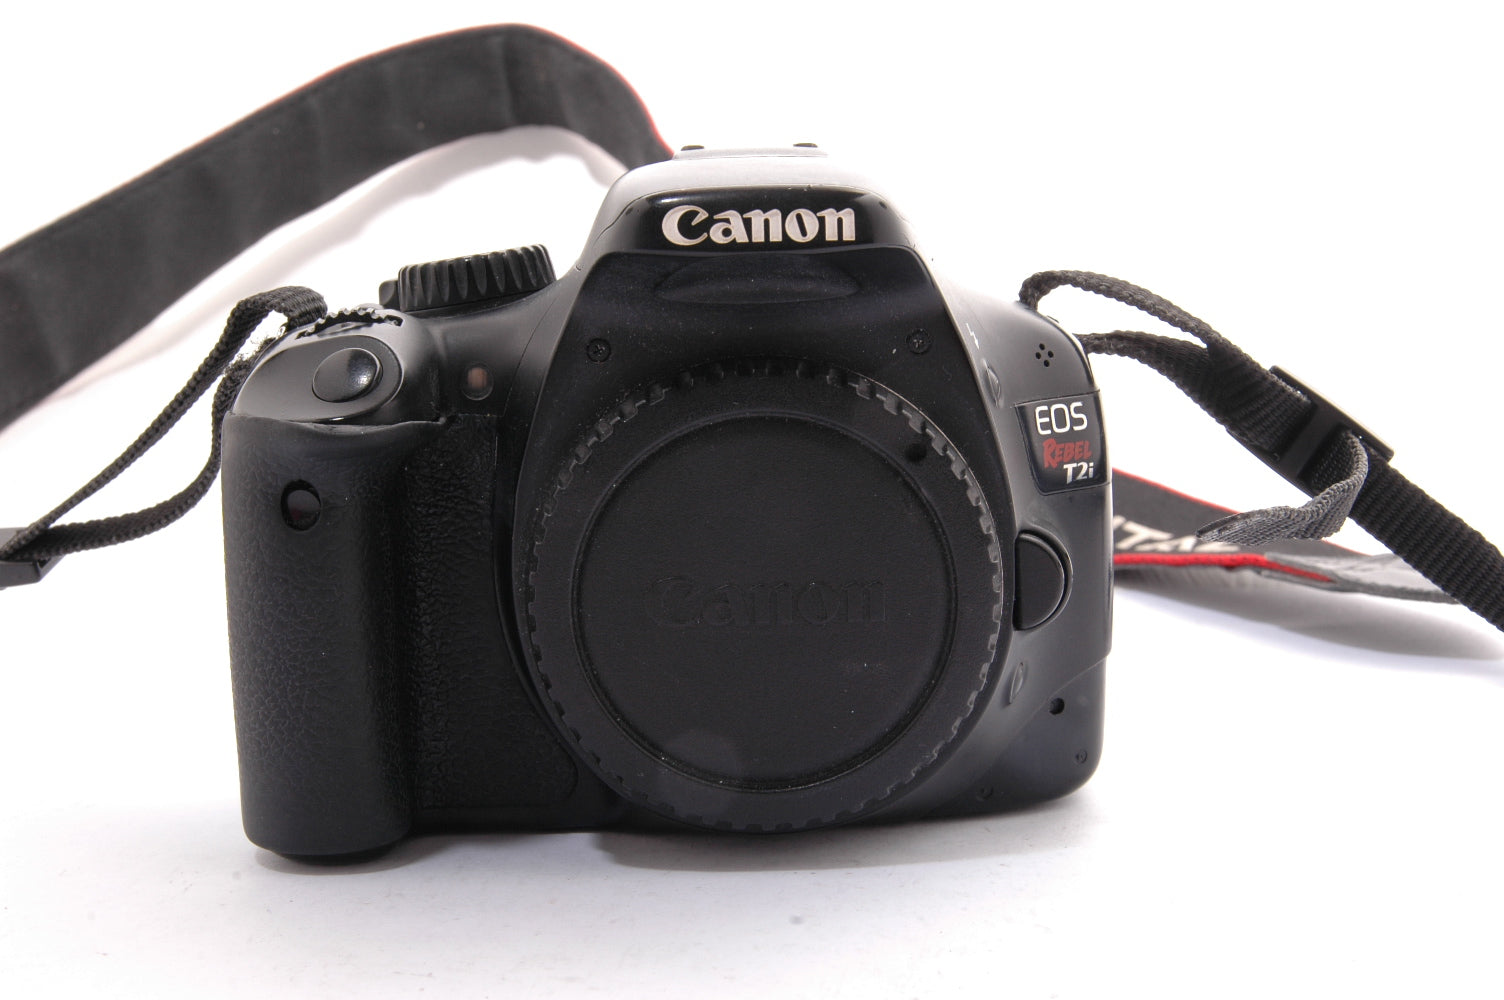 Used Canon EOS Rebel T2i Camera Body - Black